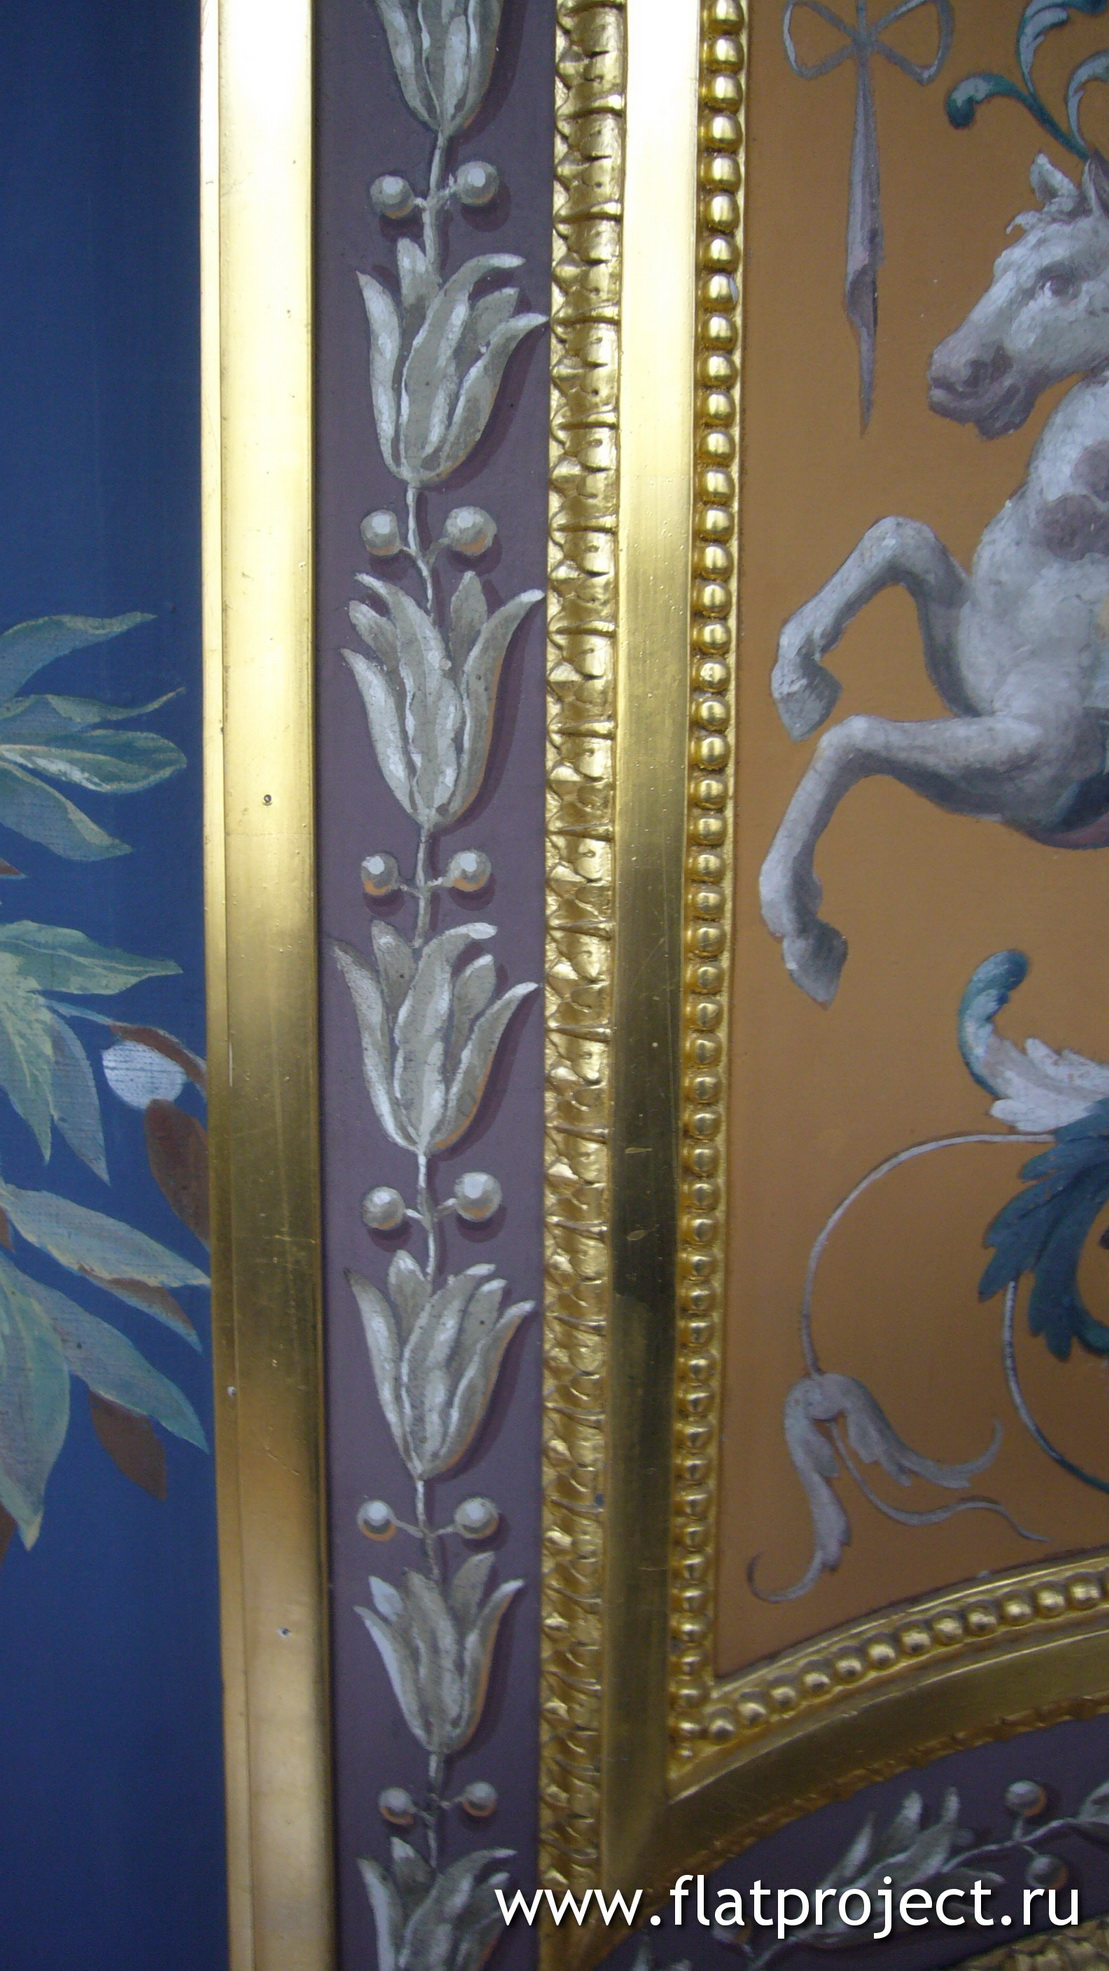 The State Hermitage museum interiors – photo 156